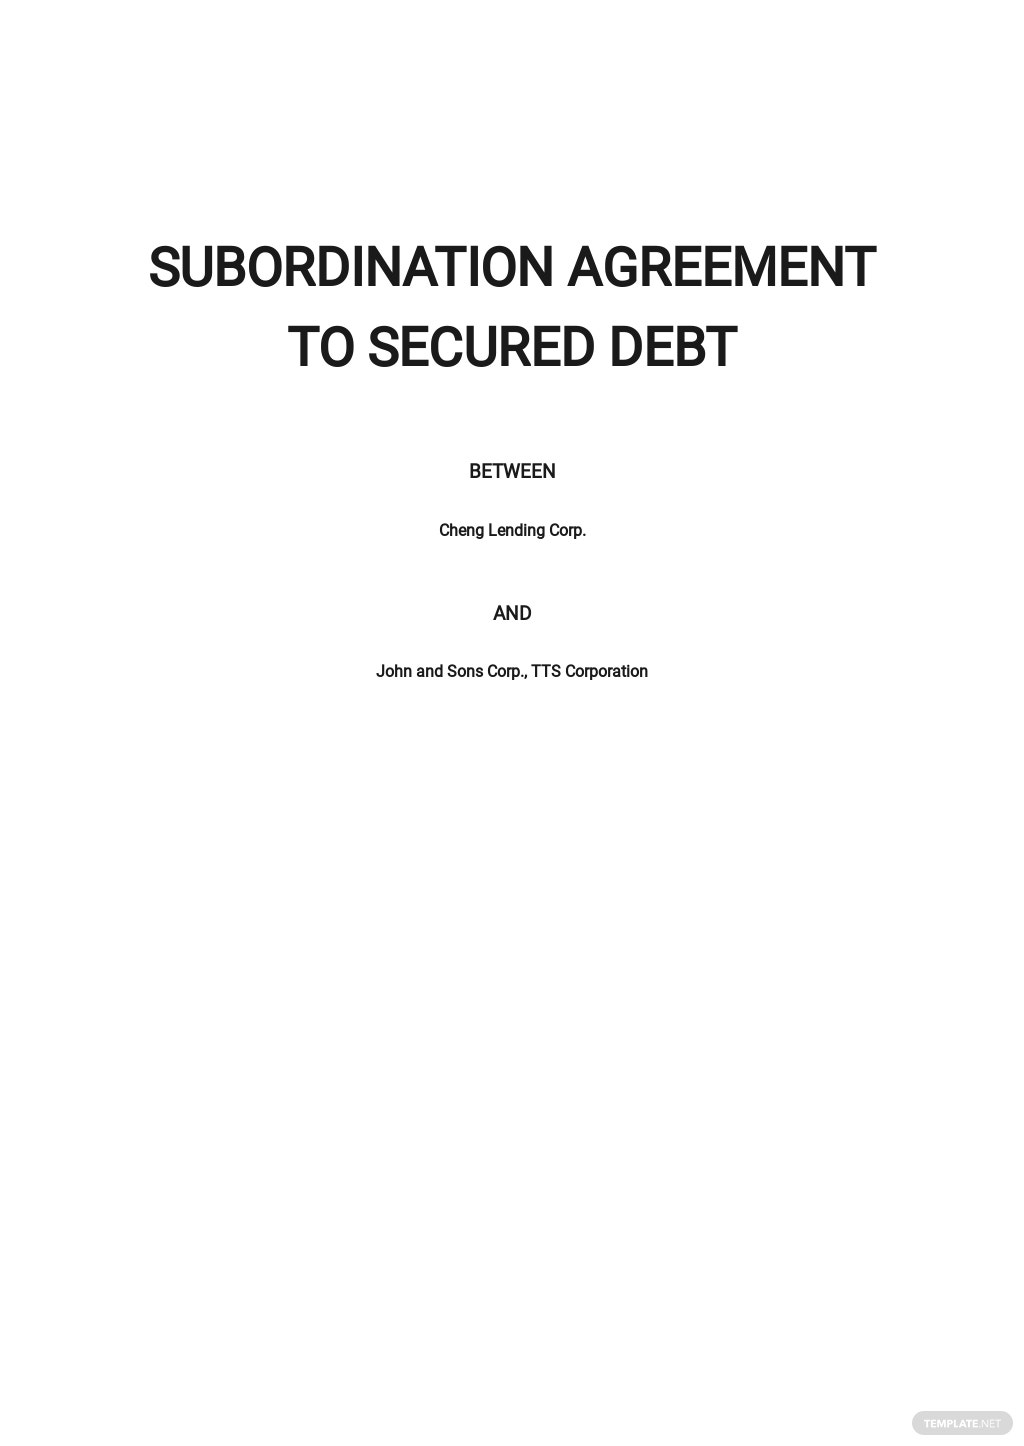 Subordination Agreement to Secured Debt Template.jpe